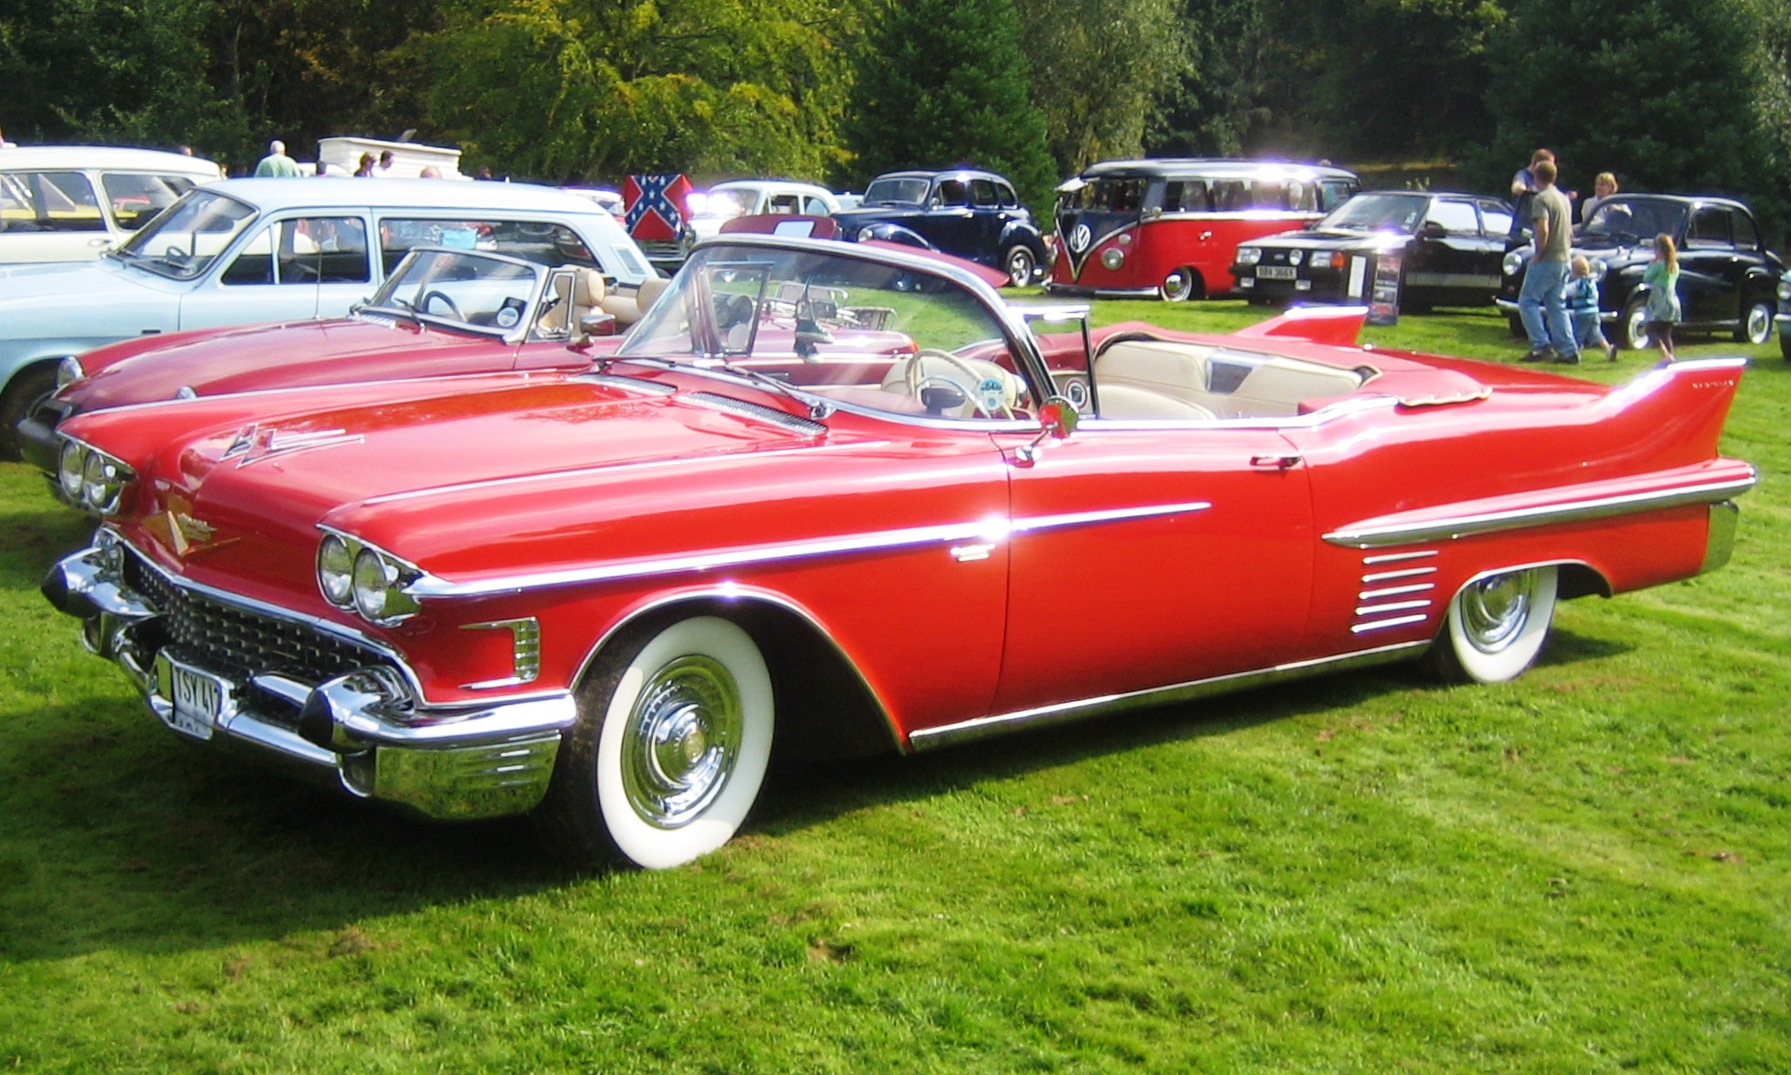 1959 Pink Cadillac Convertible For Sale 1959 Cadillac